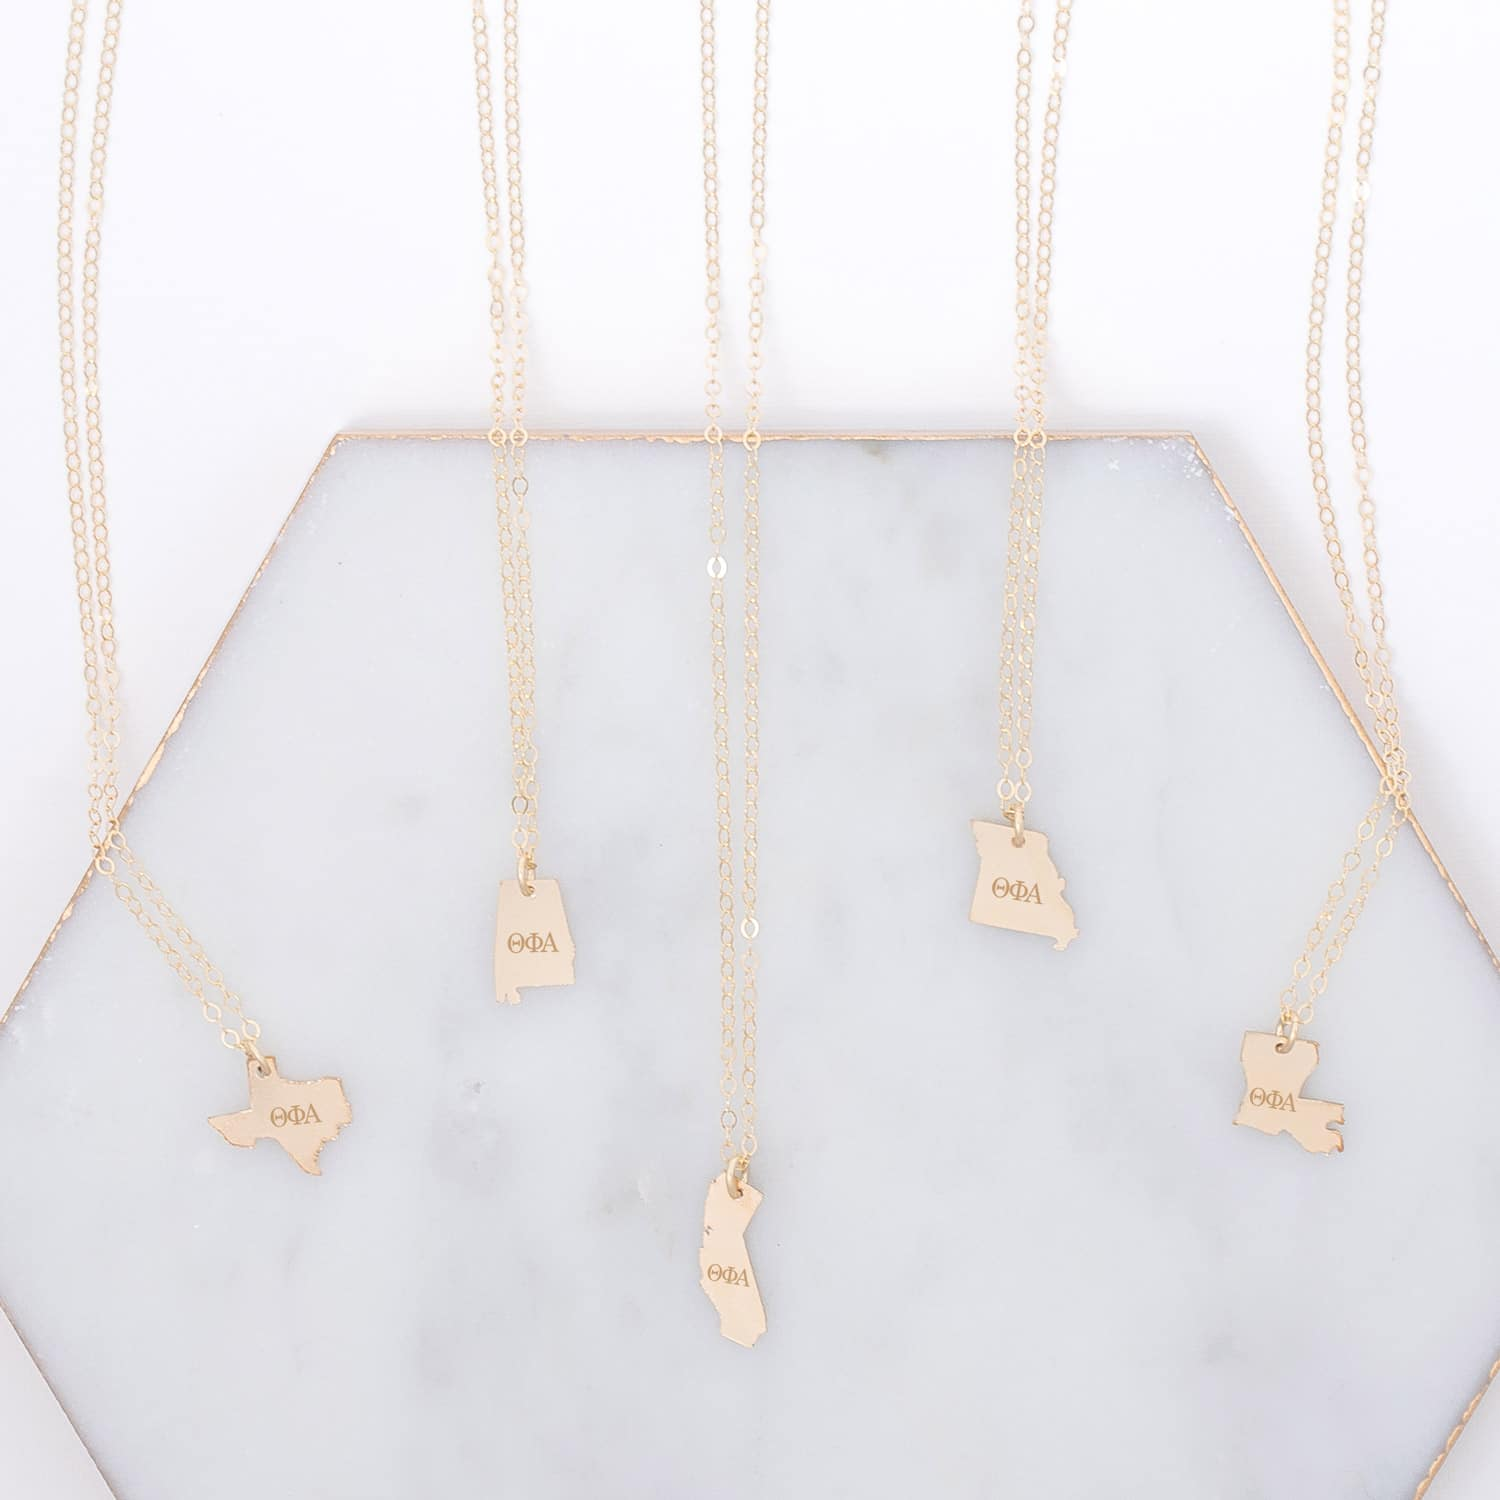 theta-phi-alpha-state-necklace-gold-compilation-on-marble